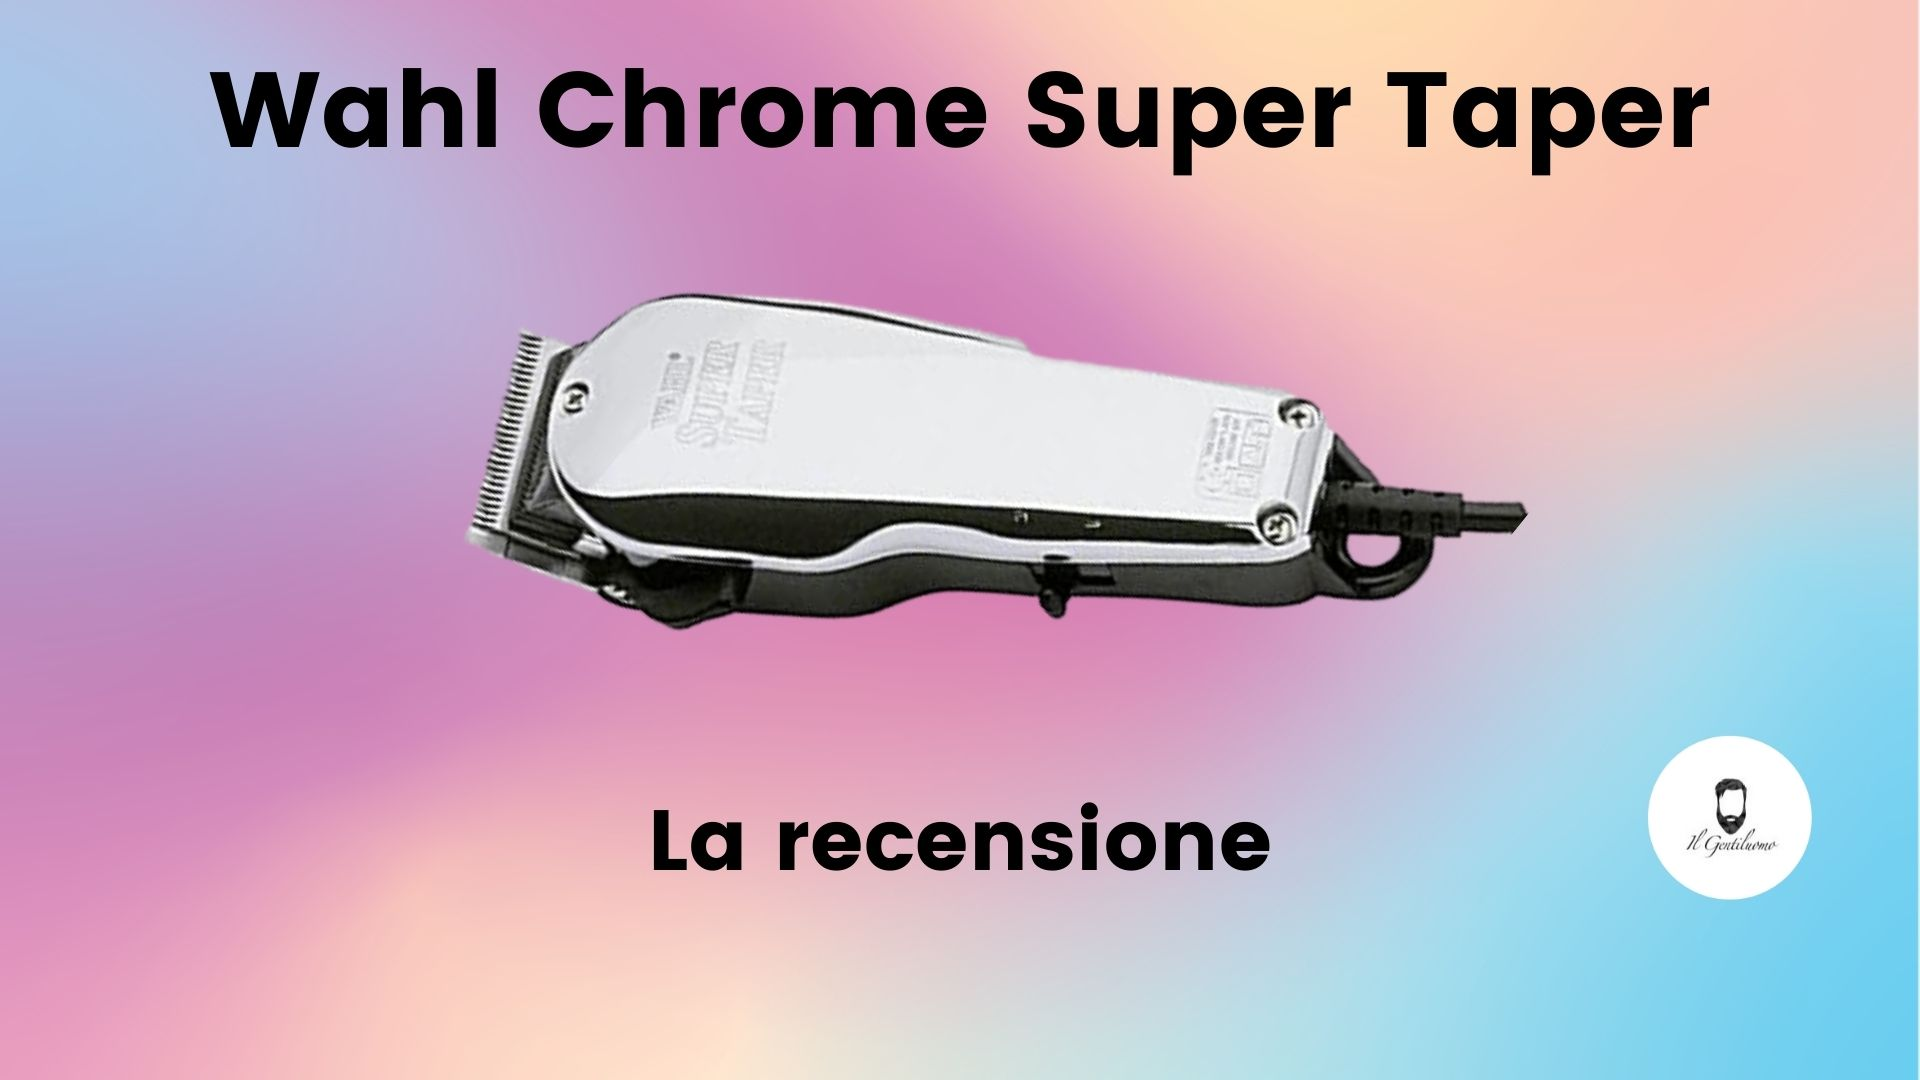 Wahl Chrome Super Taper recensione